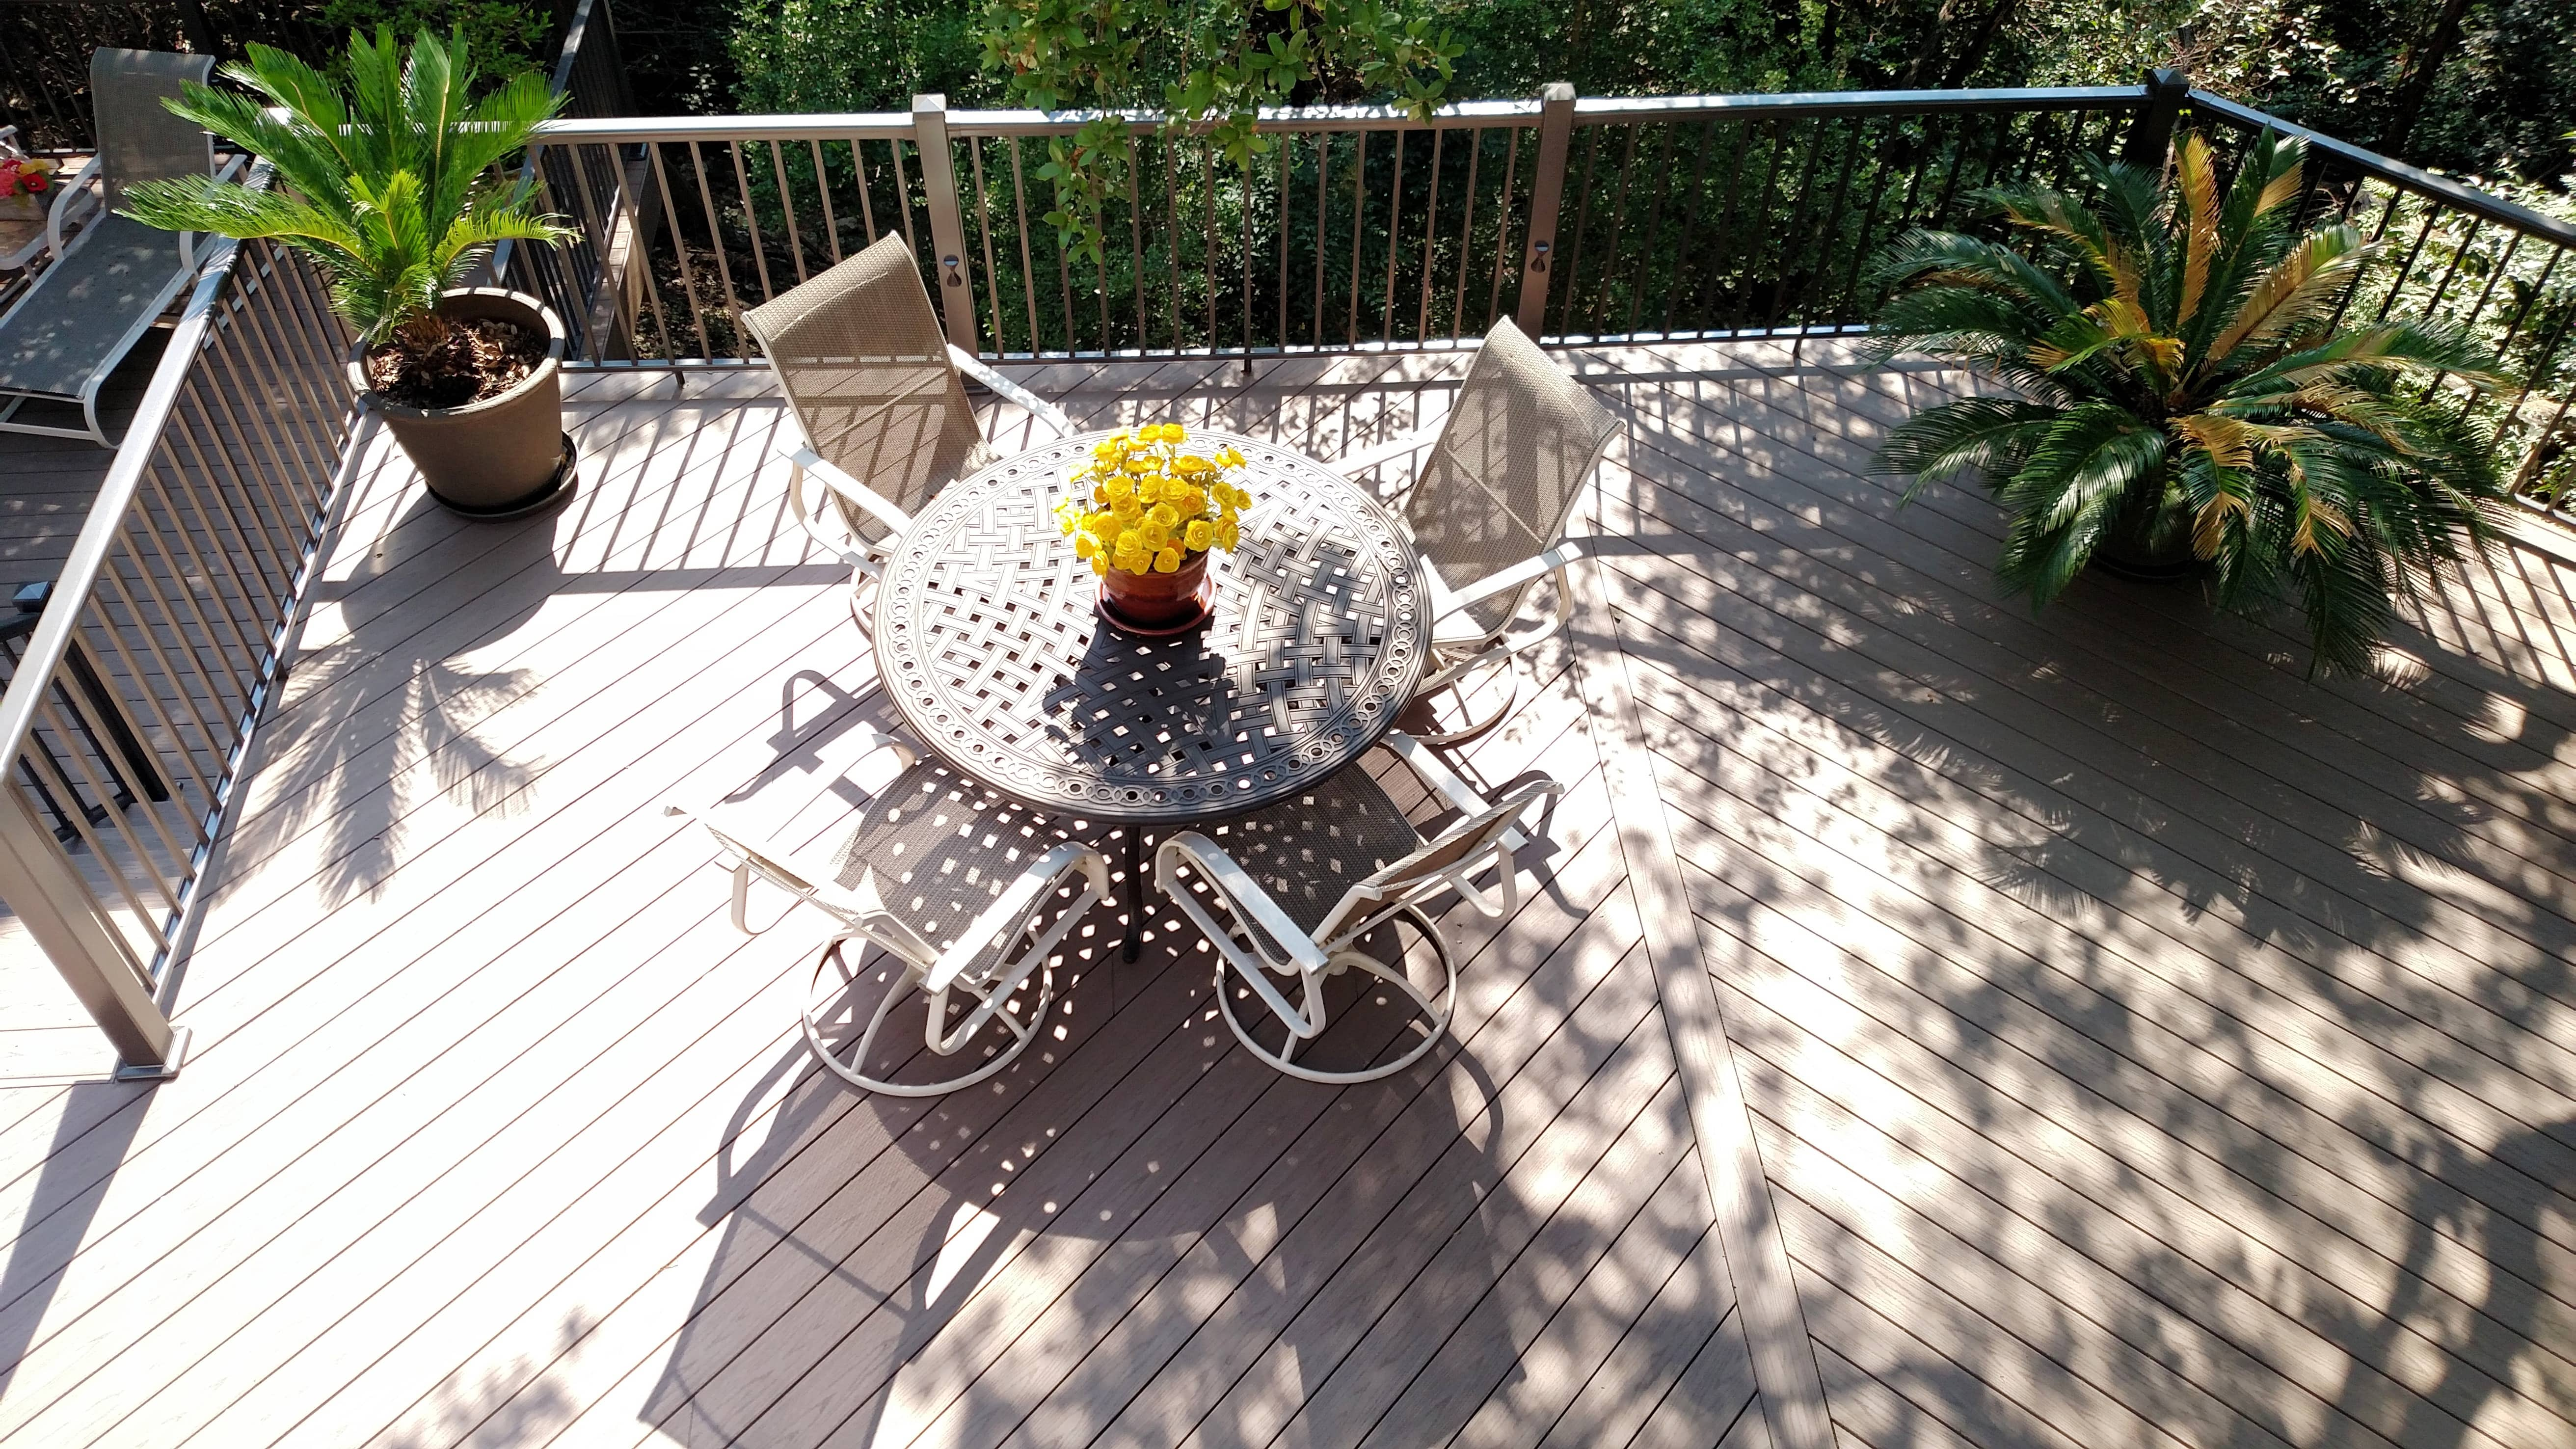 Wood deck with seating area and railing